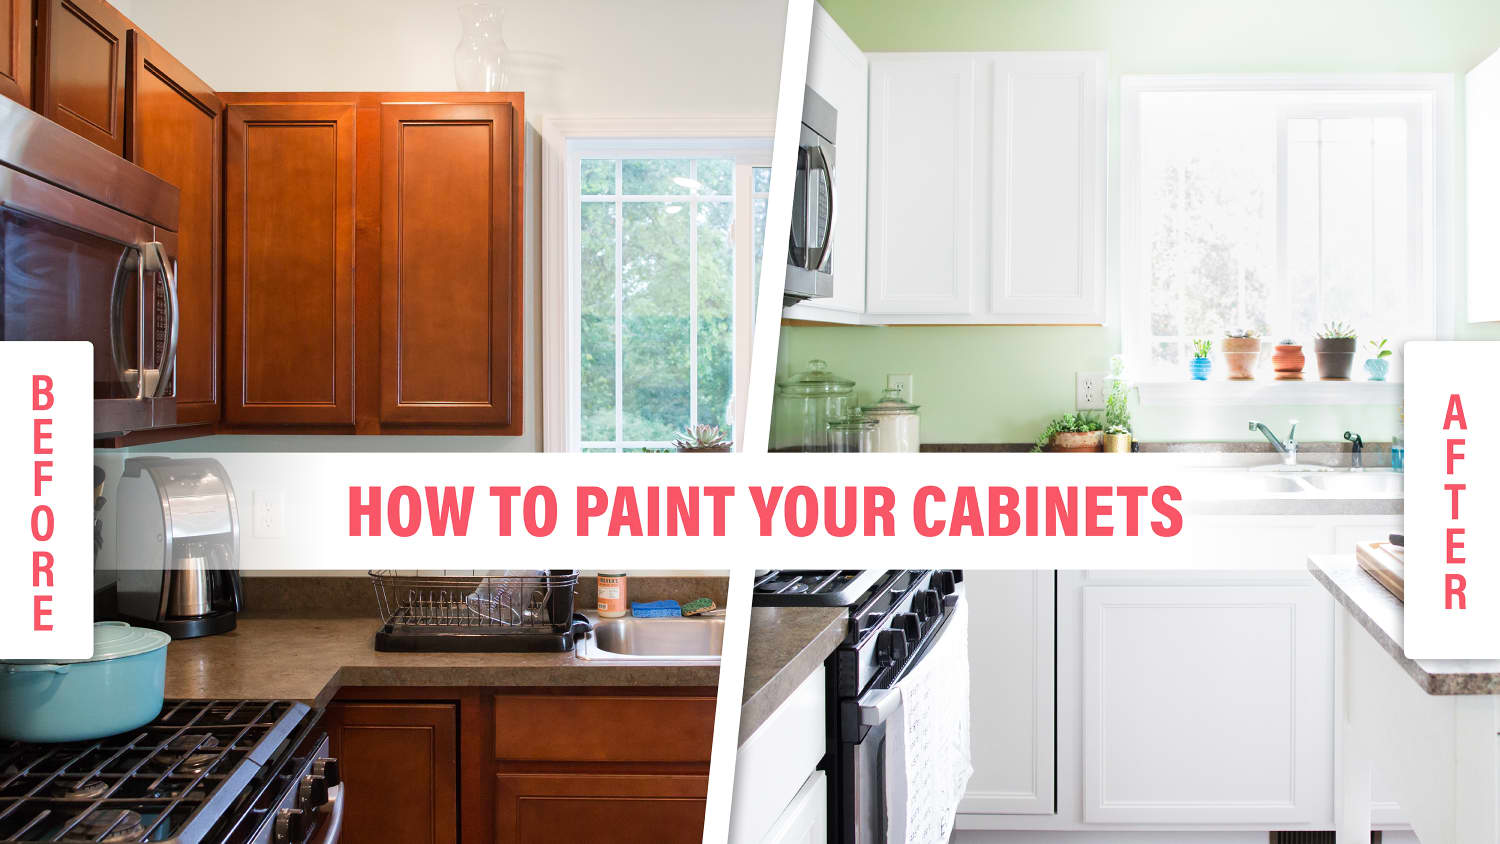 How To Paint Wood Kitchen Cabinets with White Paint | Kitchn